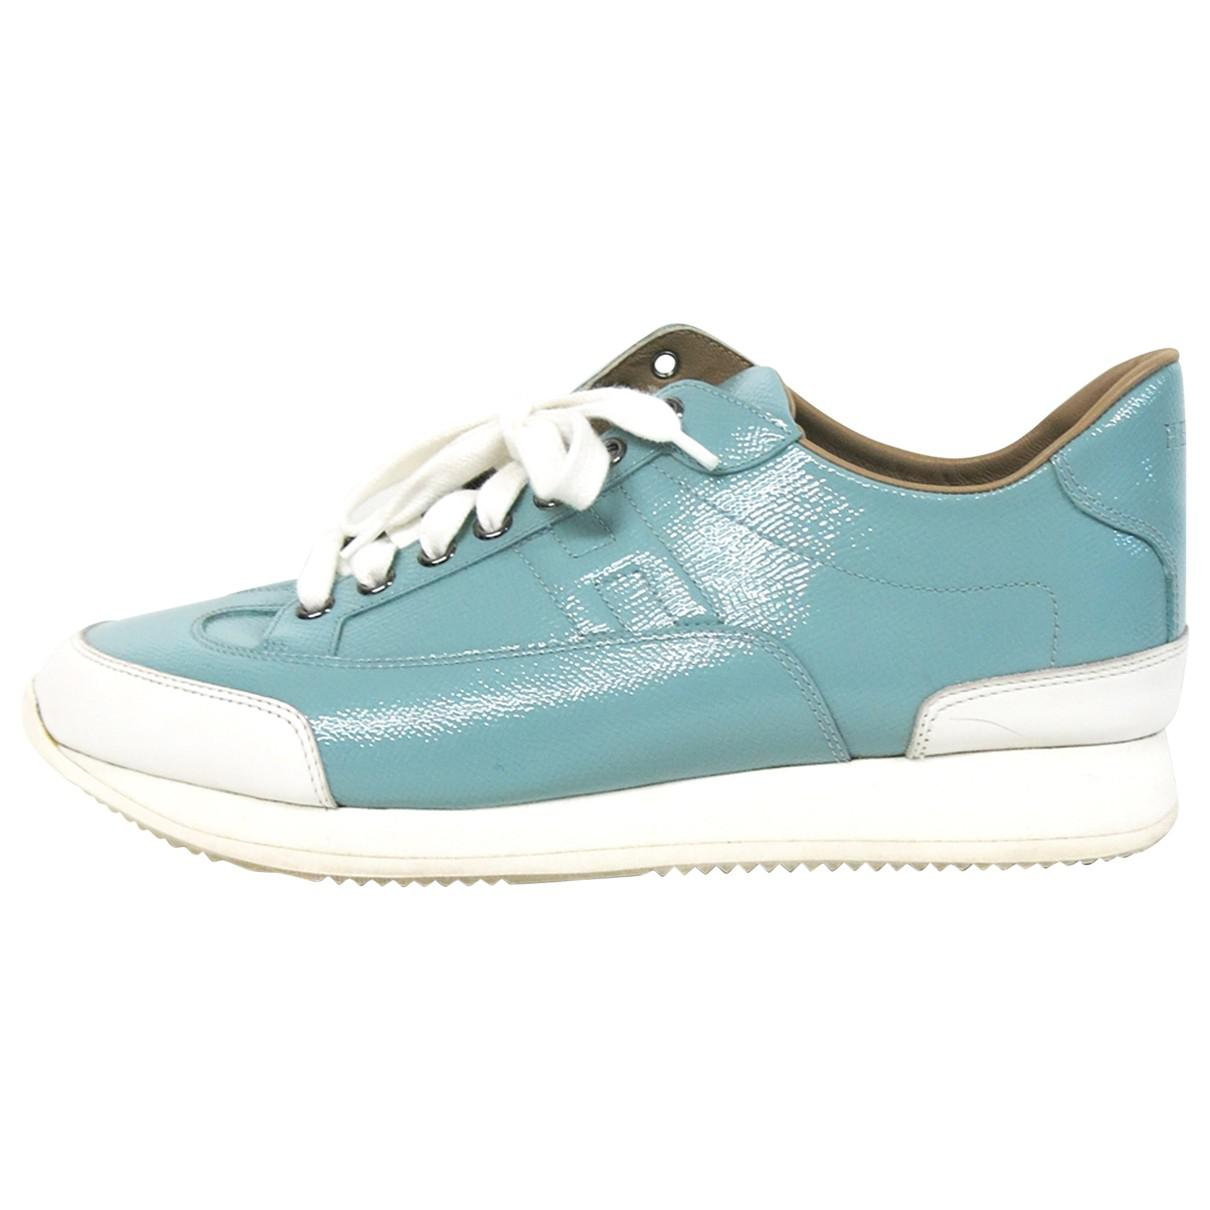 Pre-owned - Leather trainers Prada K5OsdVwI